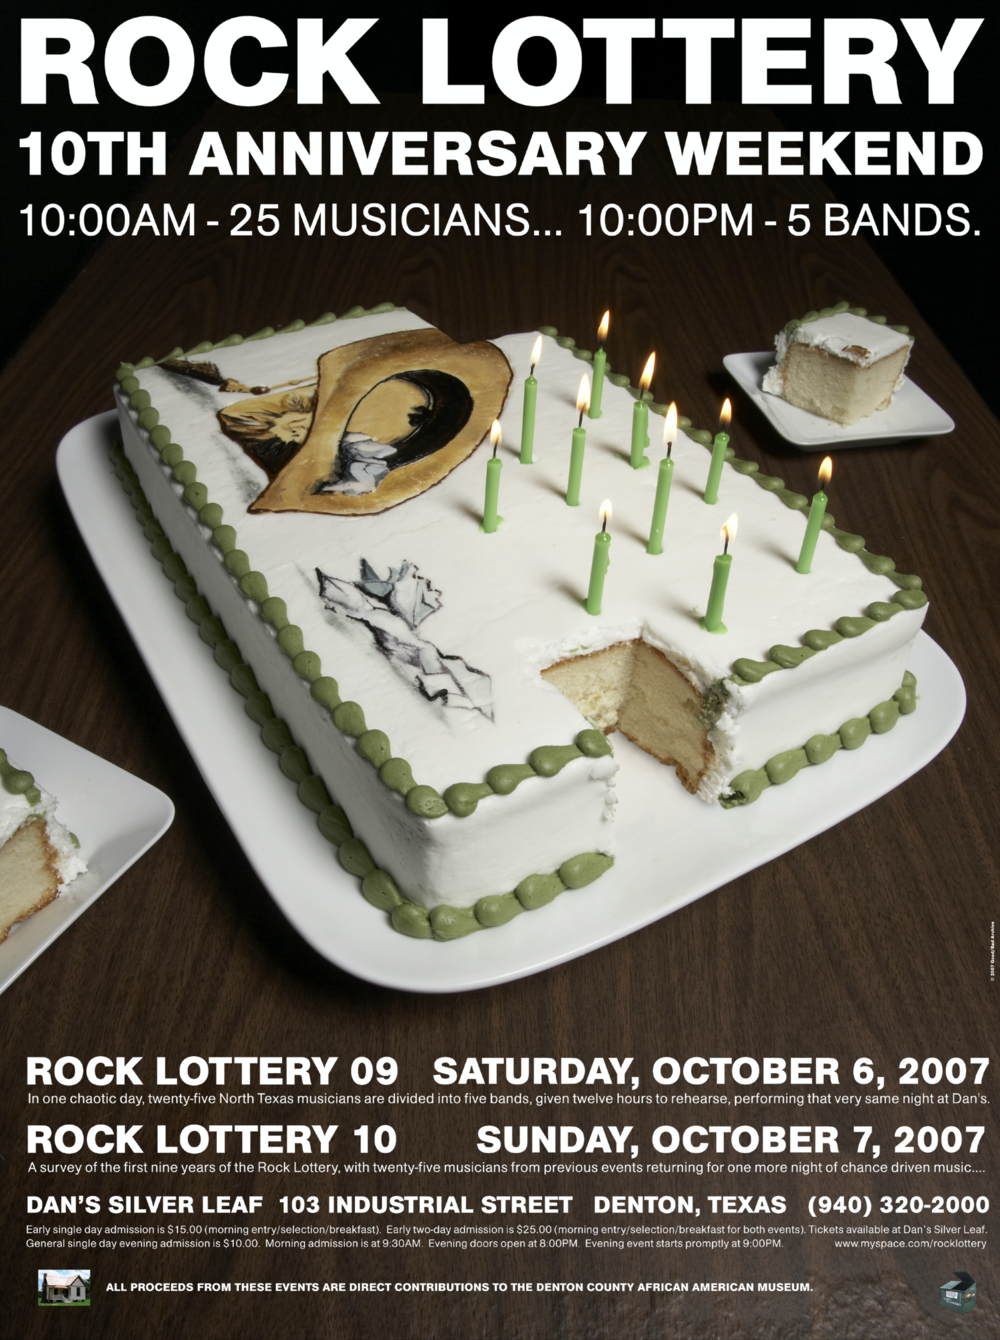 Rock Lottery 10th Anniversary Poster